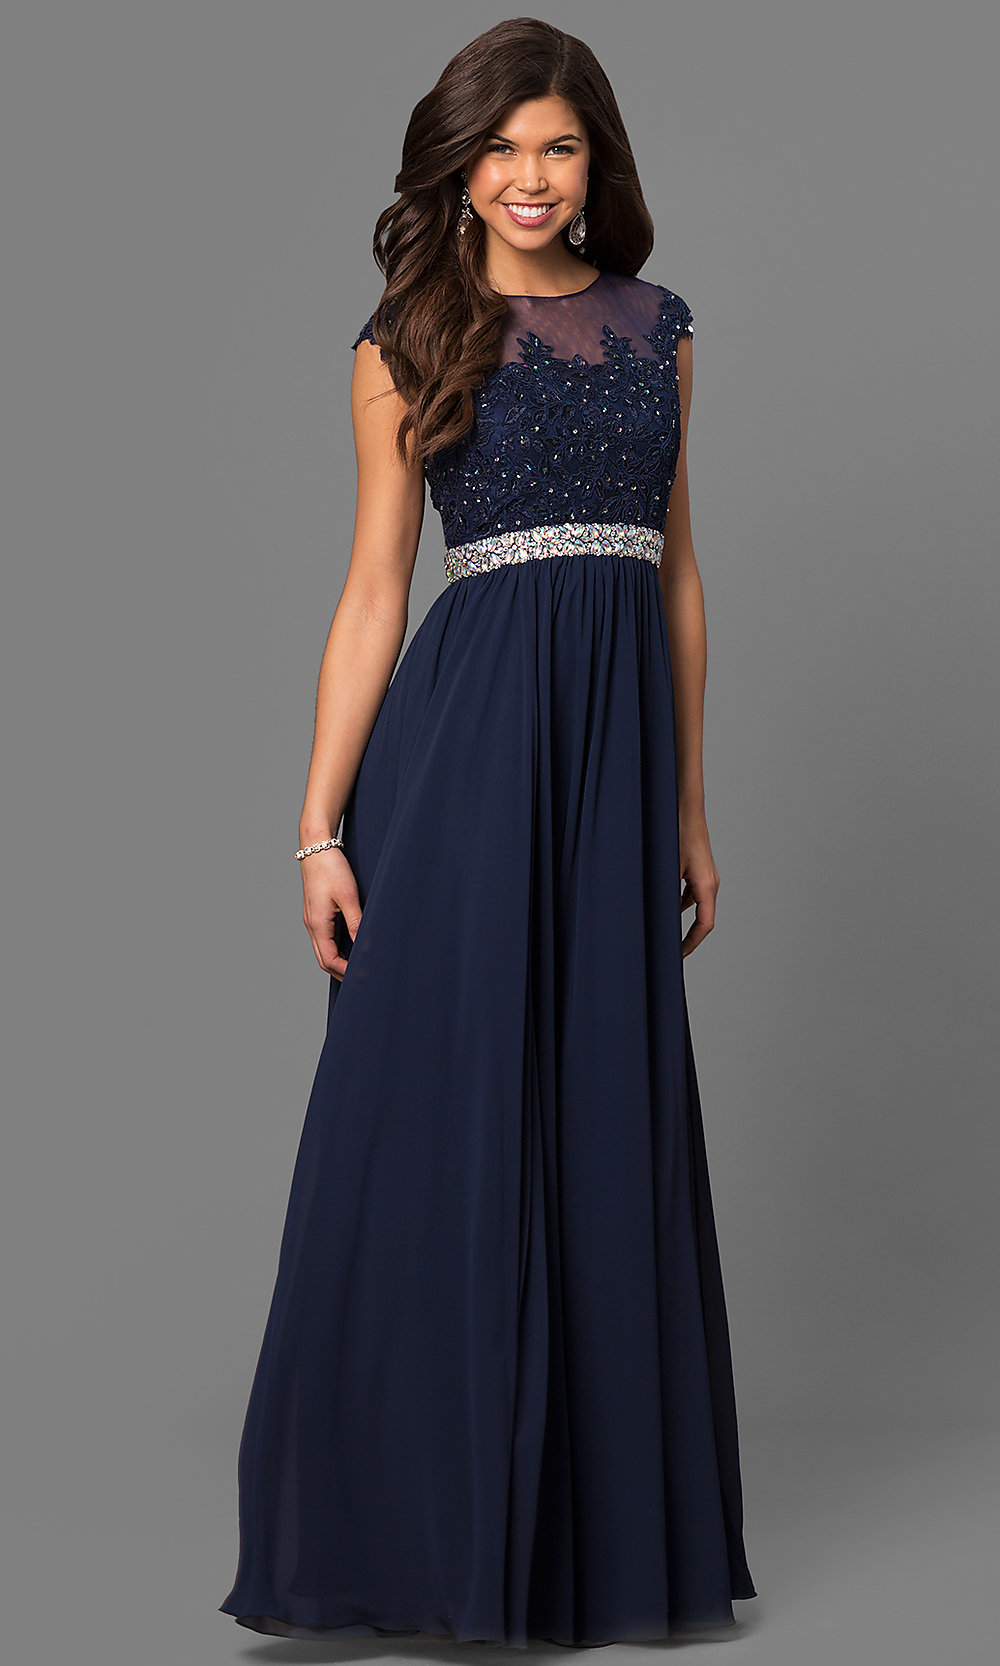 7c40786c07089 Image of floor-length embroidered lace-top formal gown. Style: DQ-. Tap to  expand